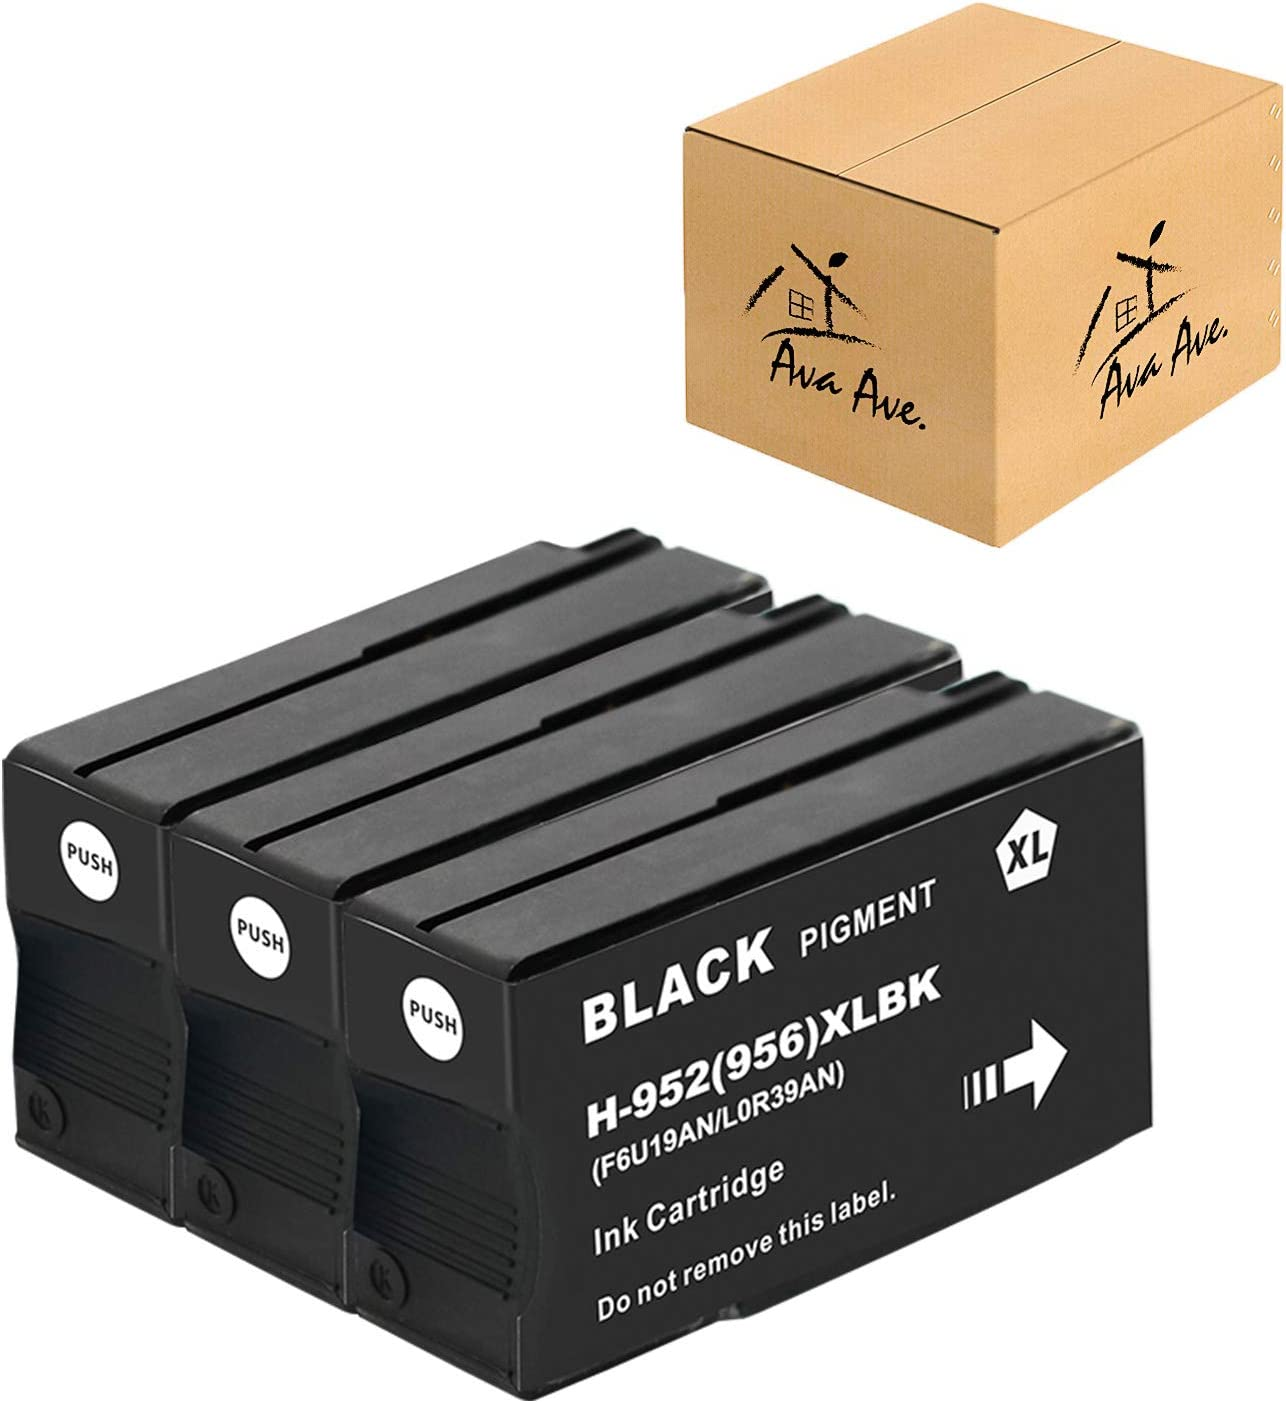 3-Pack 952XL Replacement for HP 952XL 952 XL Black Ink Cartridges with Advanced Chip Technology, (3 Black) Used for HP OfficeJet Pro 8710 8720 7740 8715 8740 7720 8730 8740 8210 8715 8216 8702 Printer